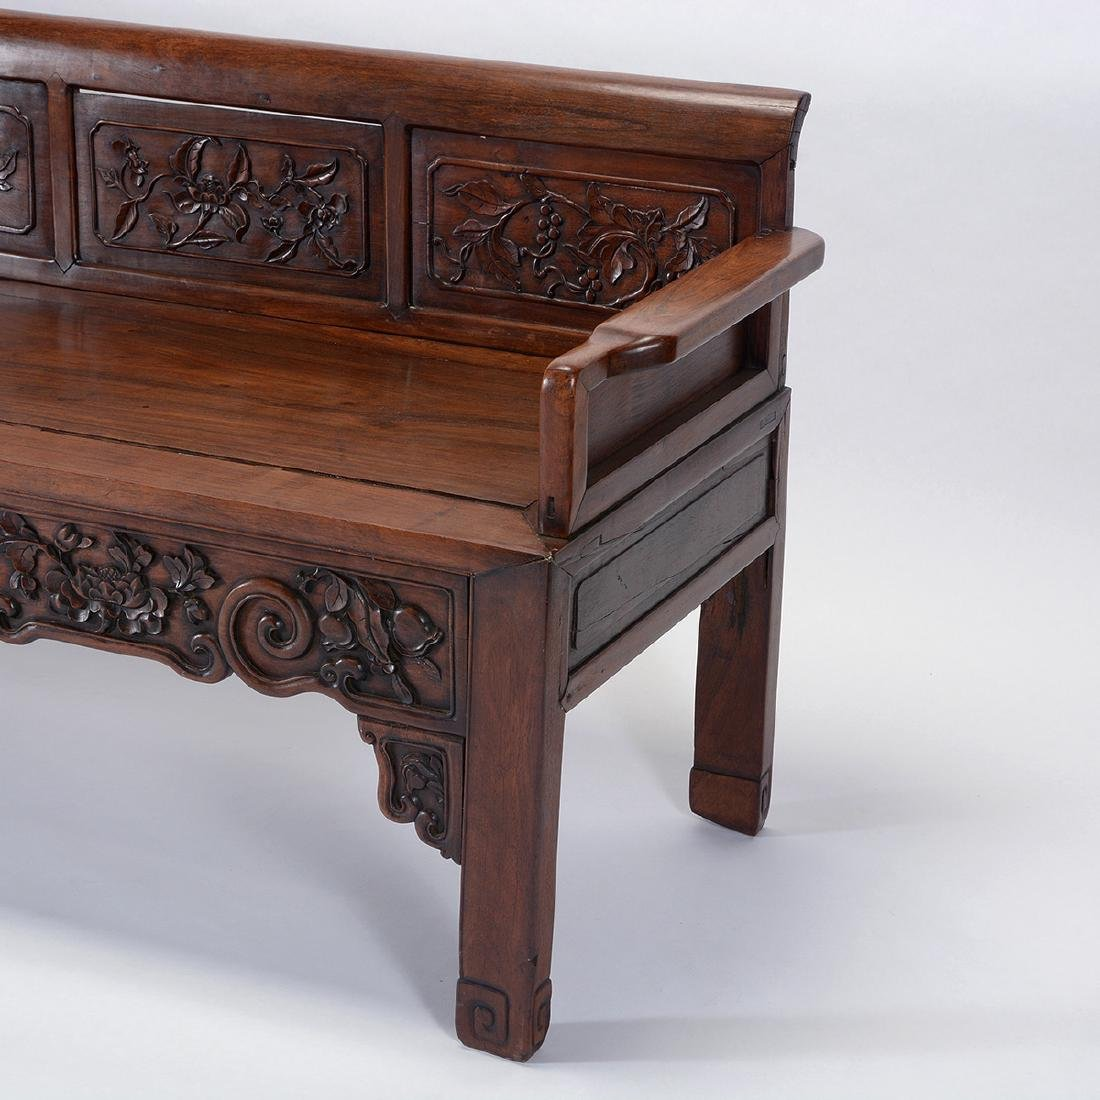 Rosewood Bench, 19th Century - 2